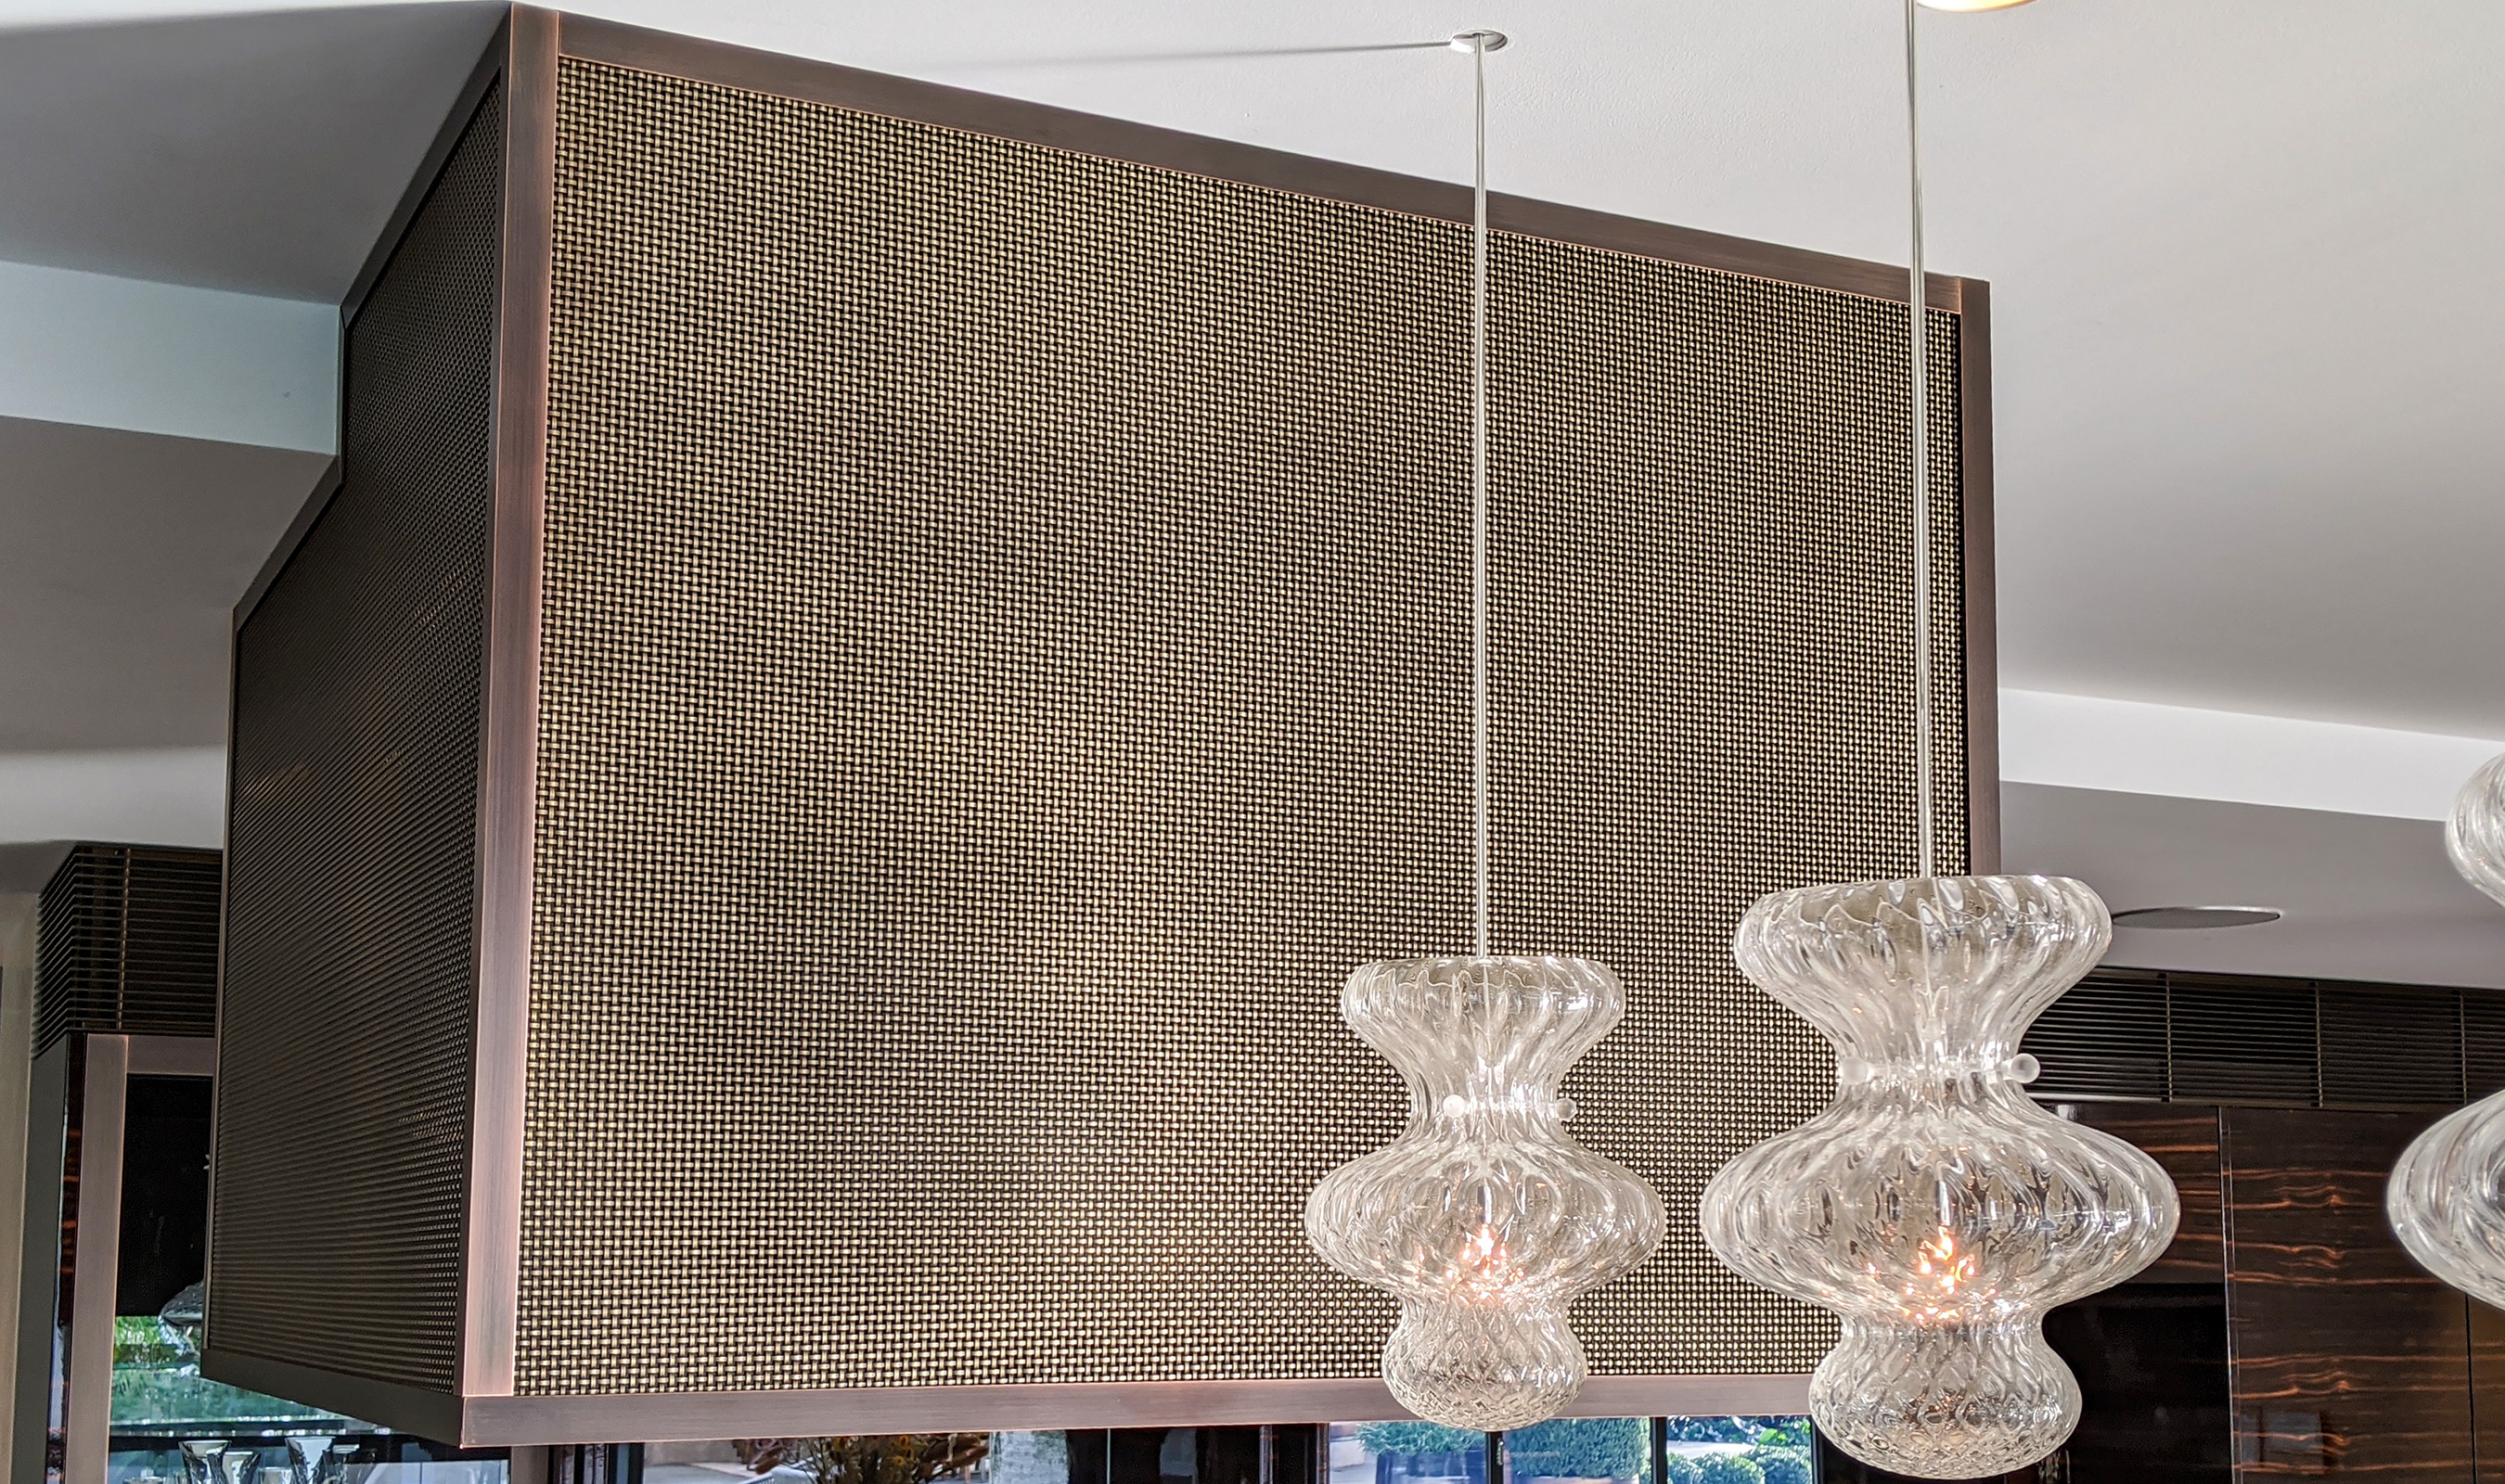 Banker Wire's S-32 is Antique Brass plated and used as range hood cladding in this modern Sydney, Austraila home.